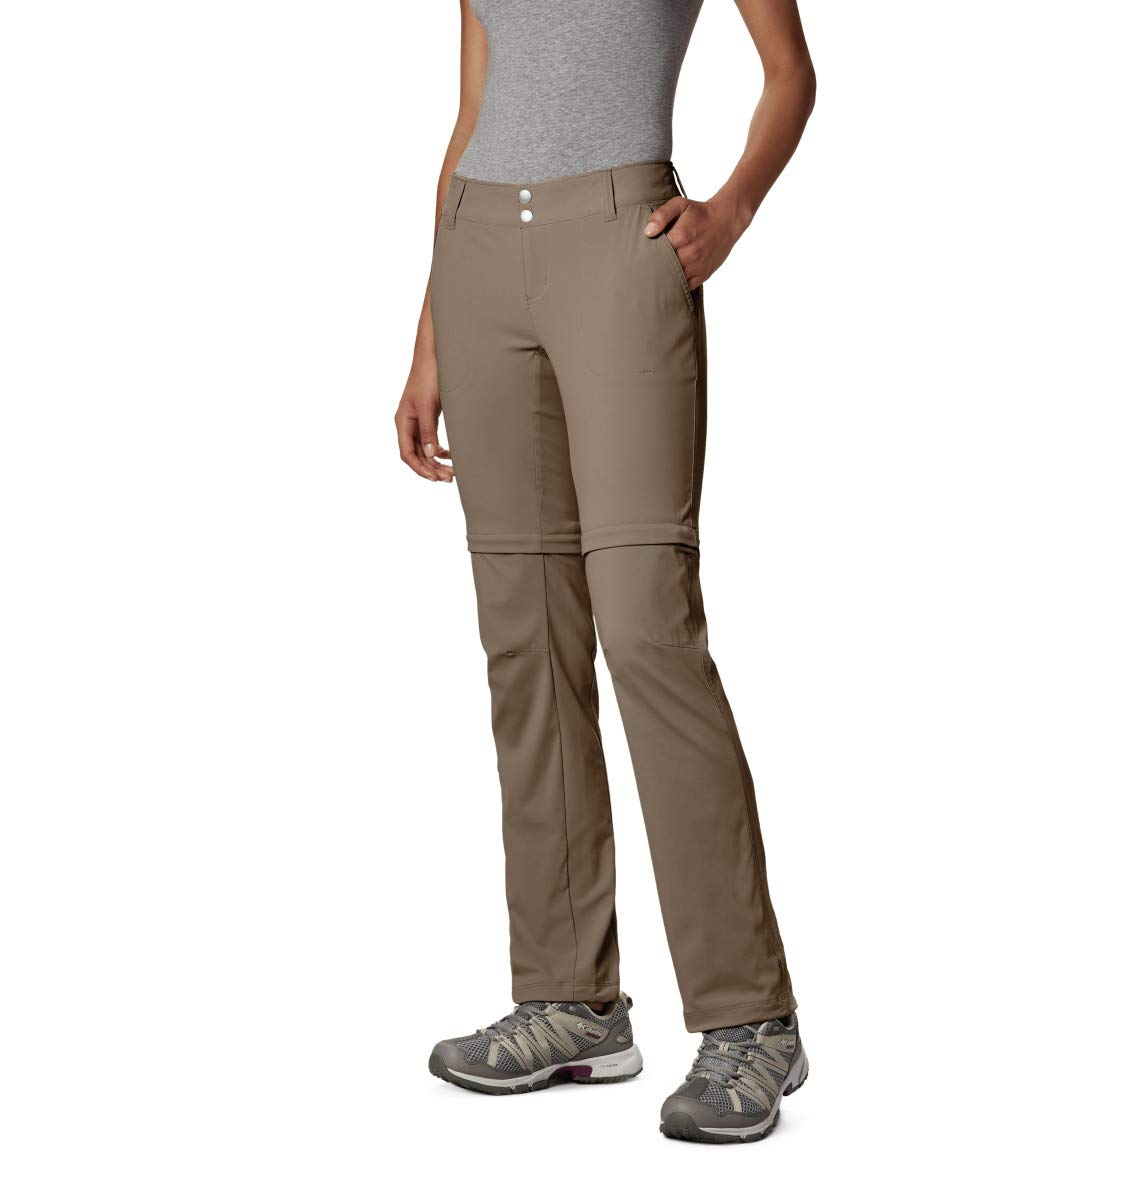 Columbia Women's Saturday Trail II Convertible Pant,Truffle,4 Long by Columbia